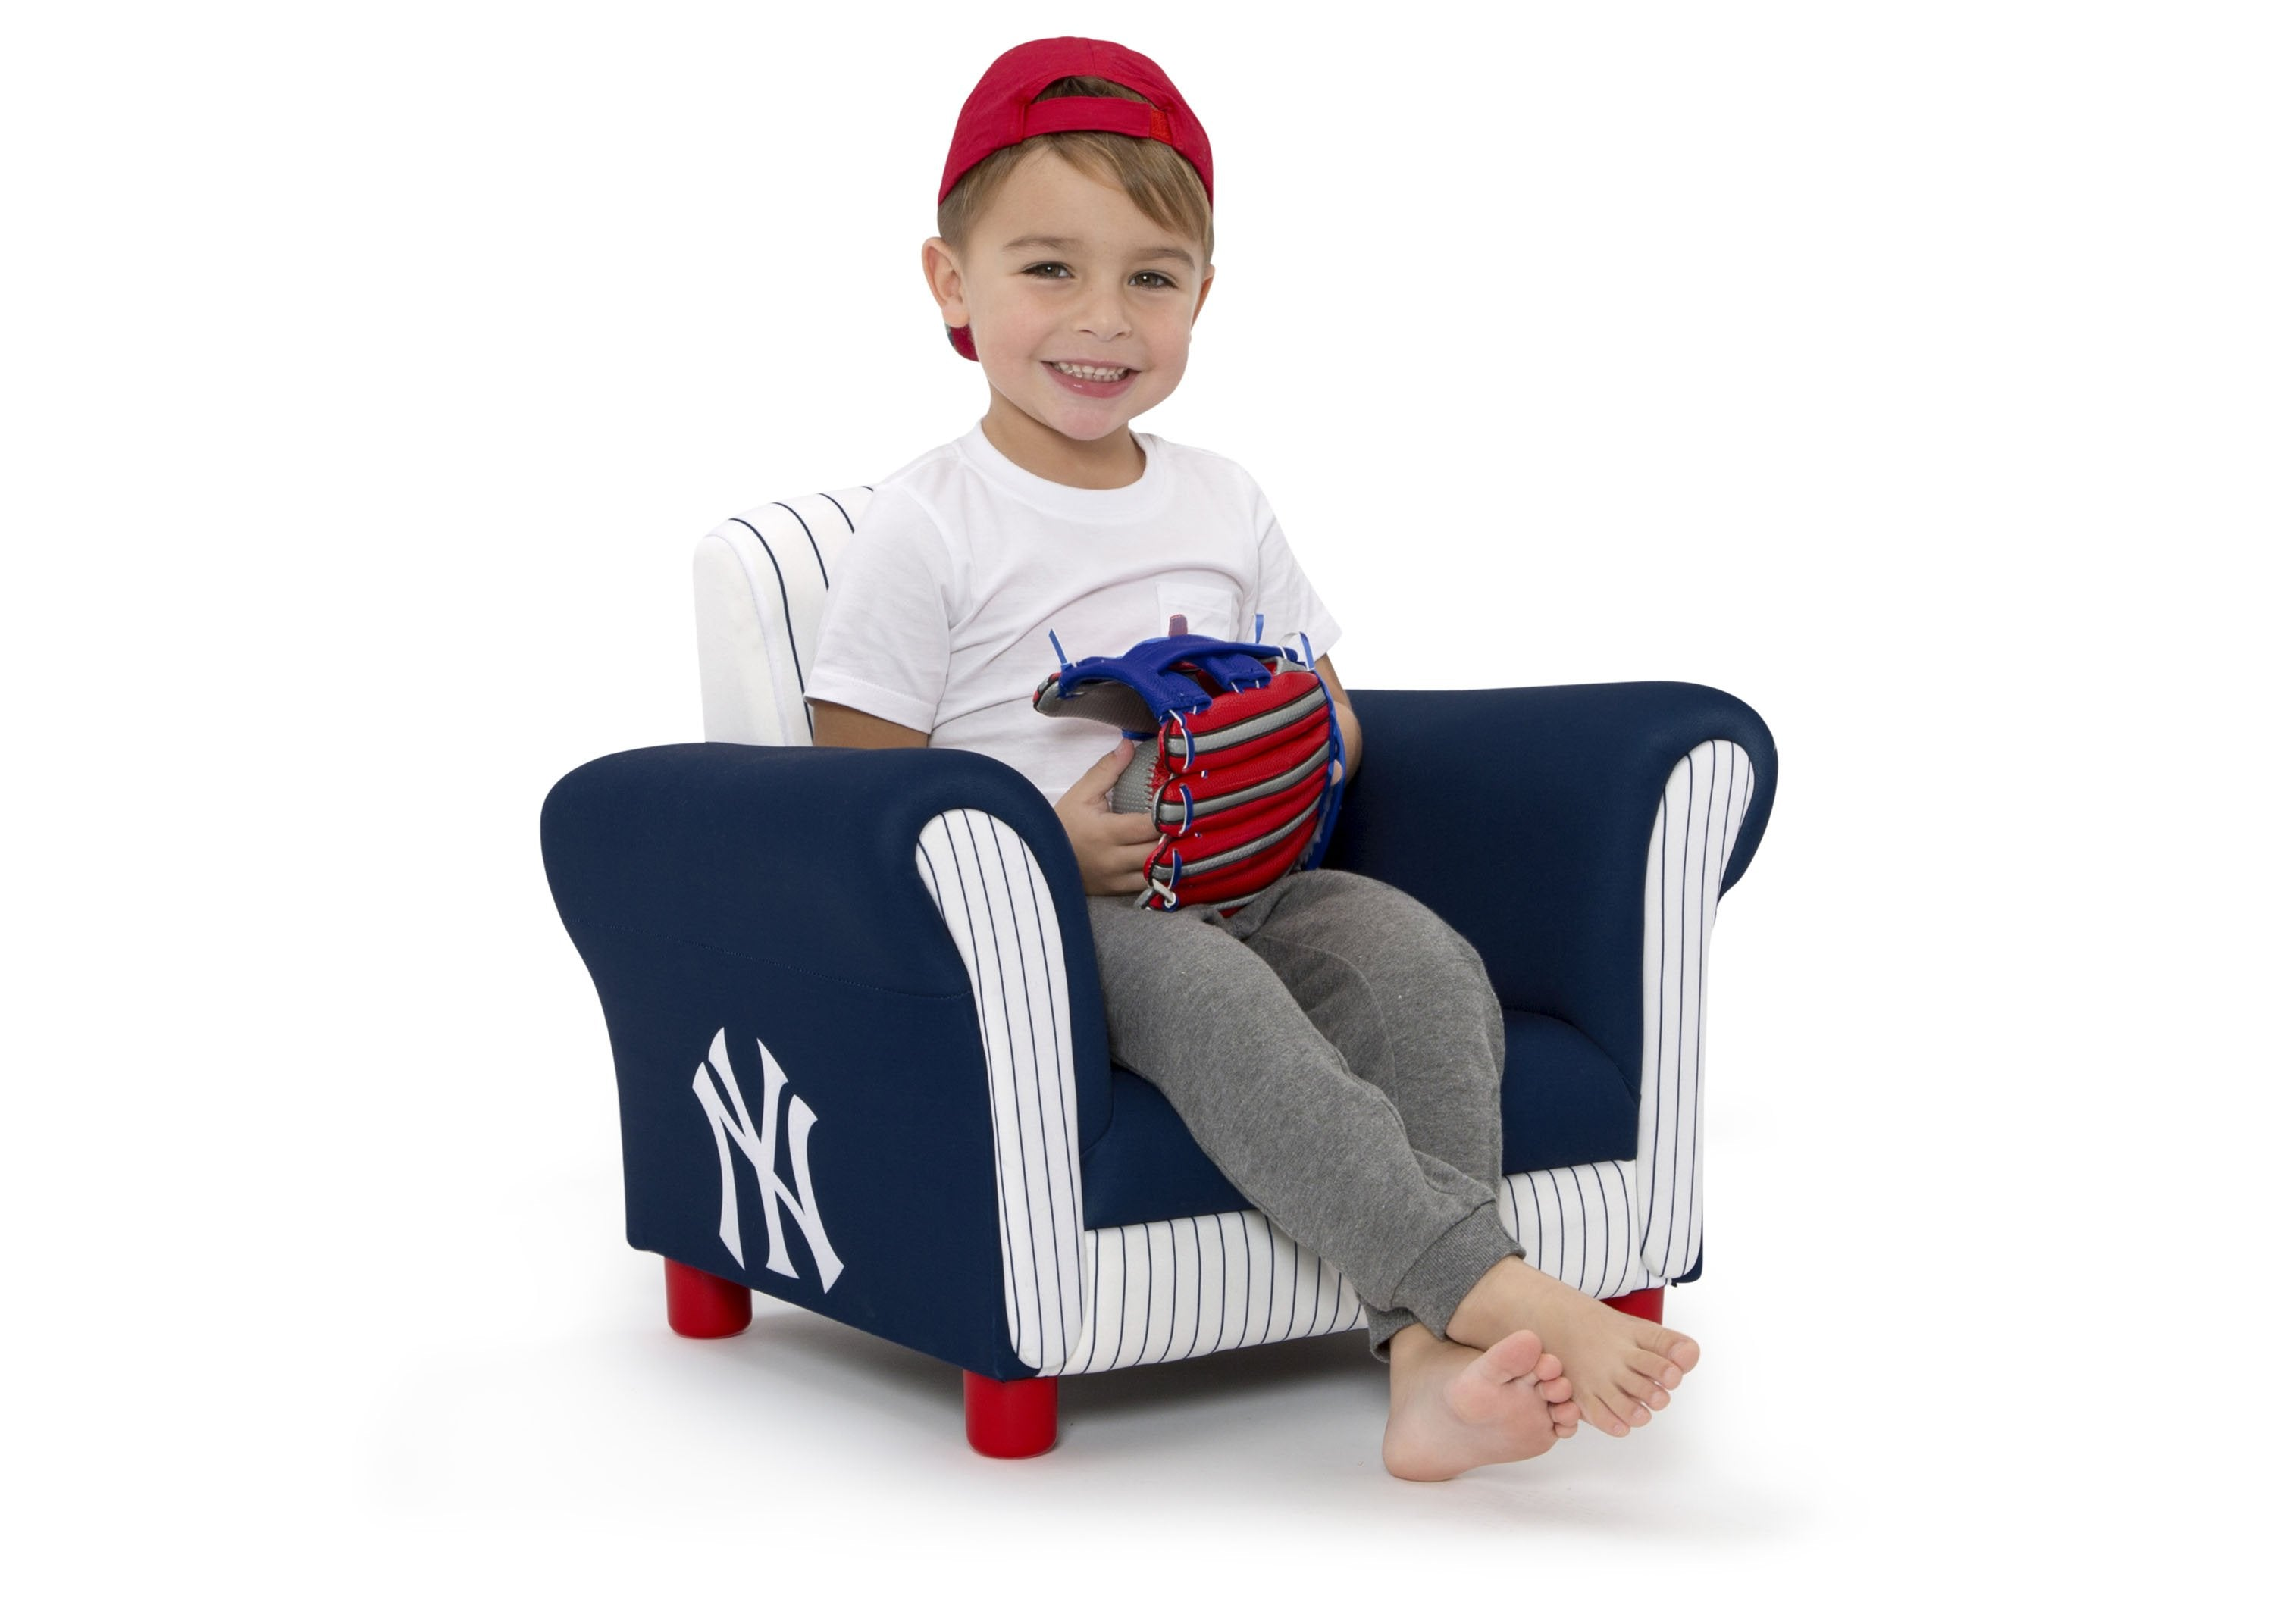 Merveilleux ... Delta Children New York Yankees Upholstered Chair, Right View With  Model A4a